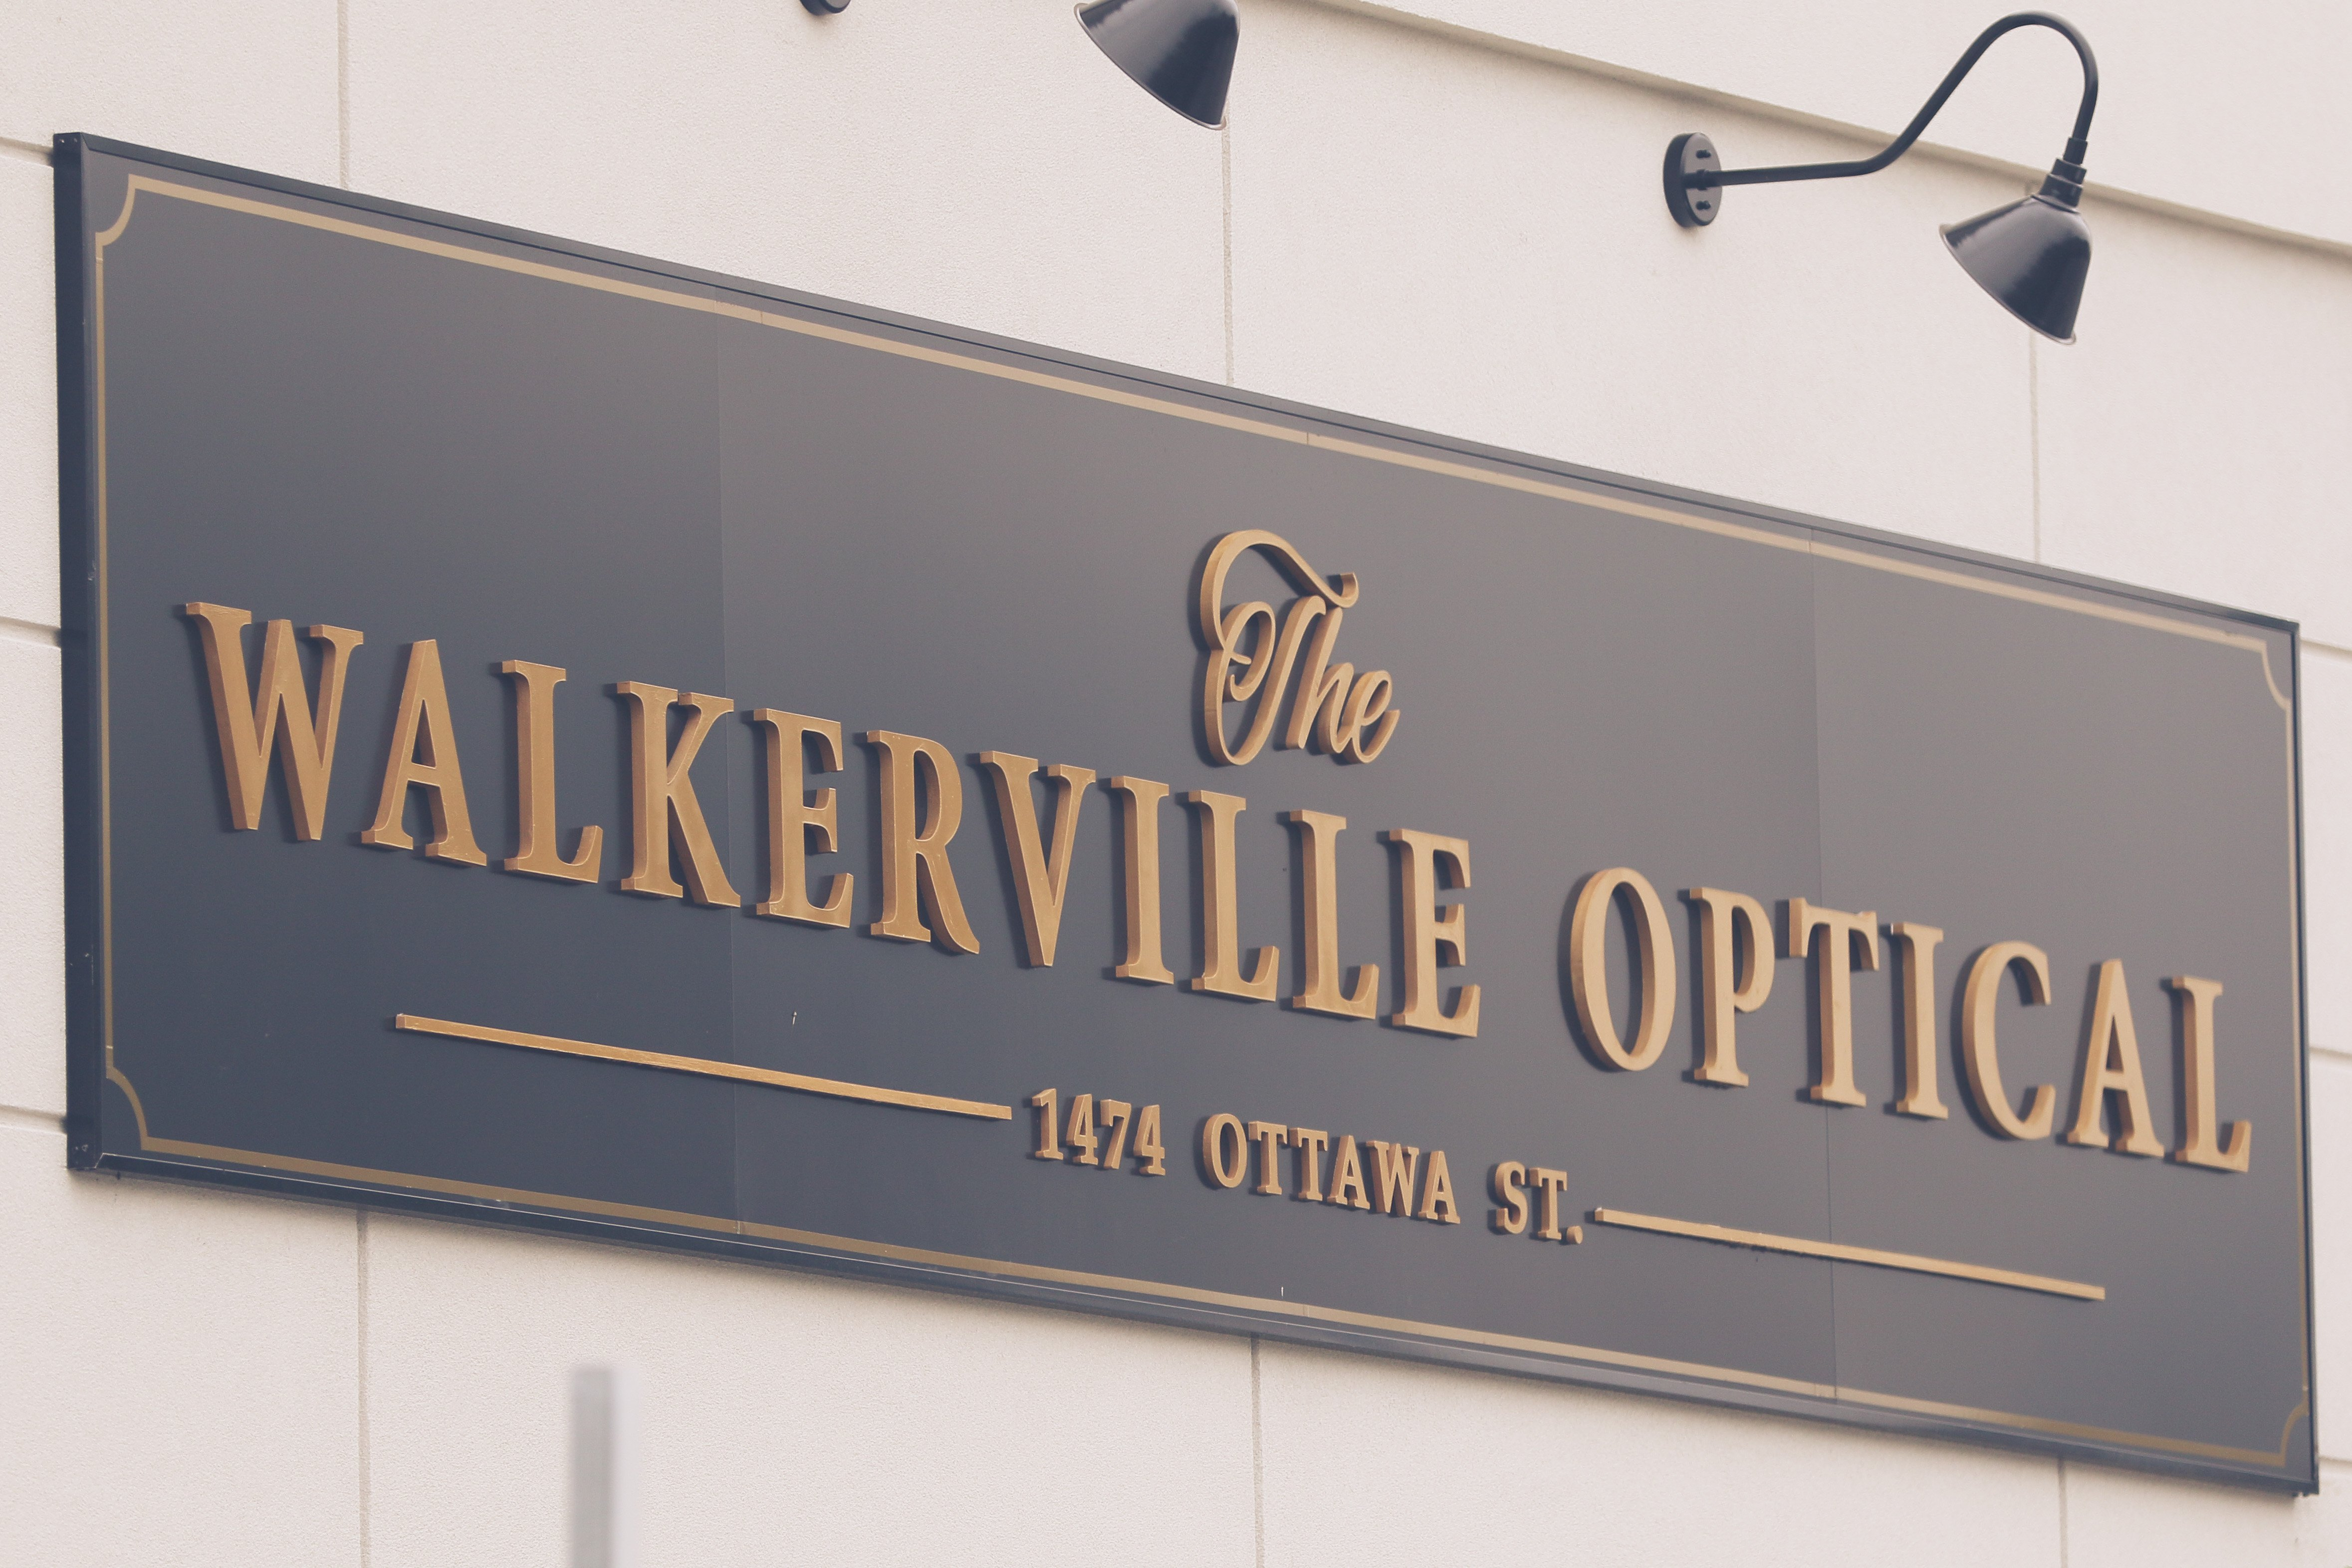 Magasin Ottawa The Walkerville Optical Boutique Opening On Ottawa Street